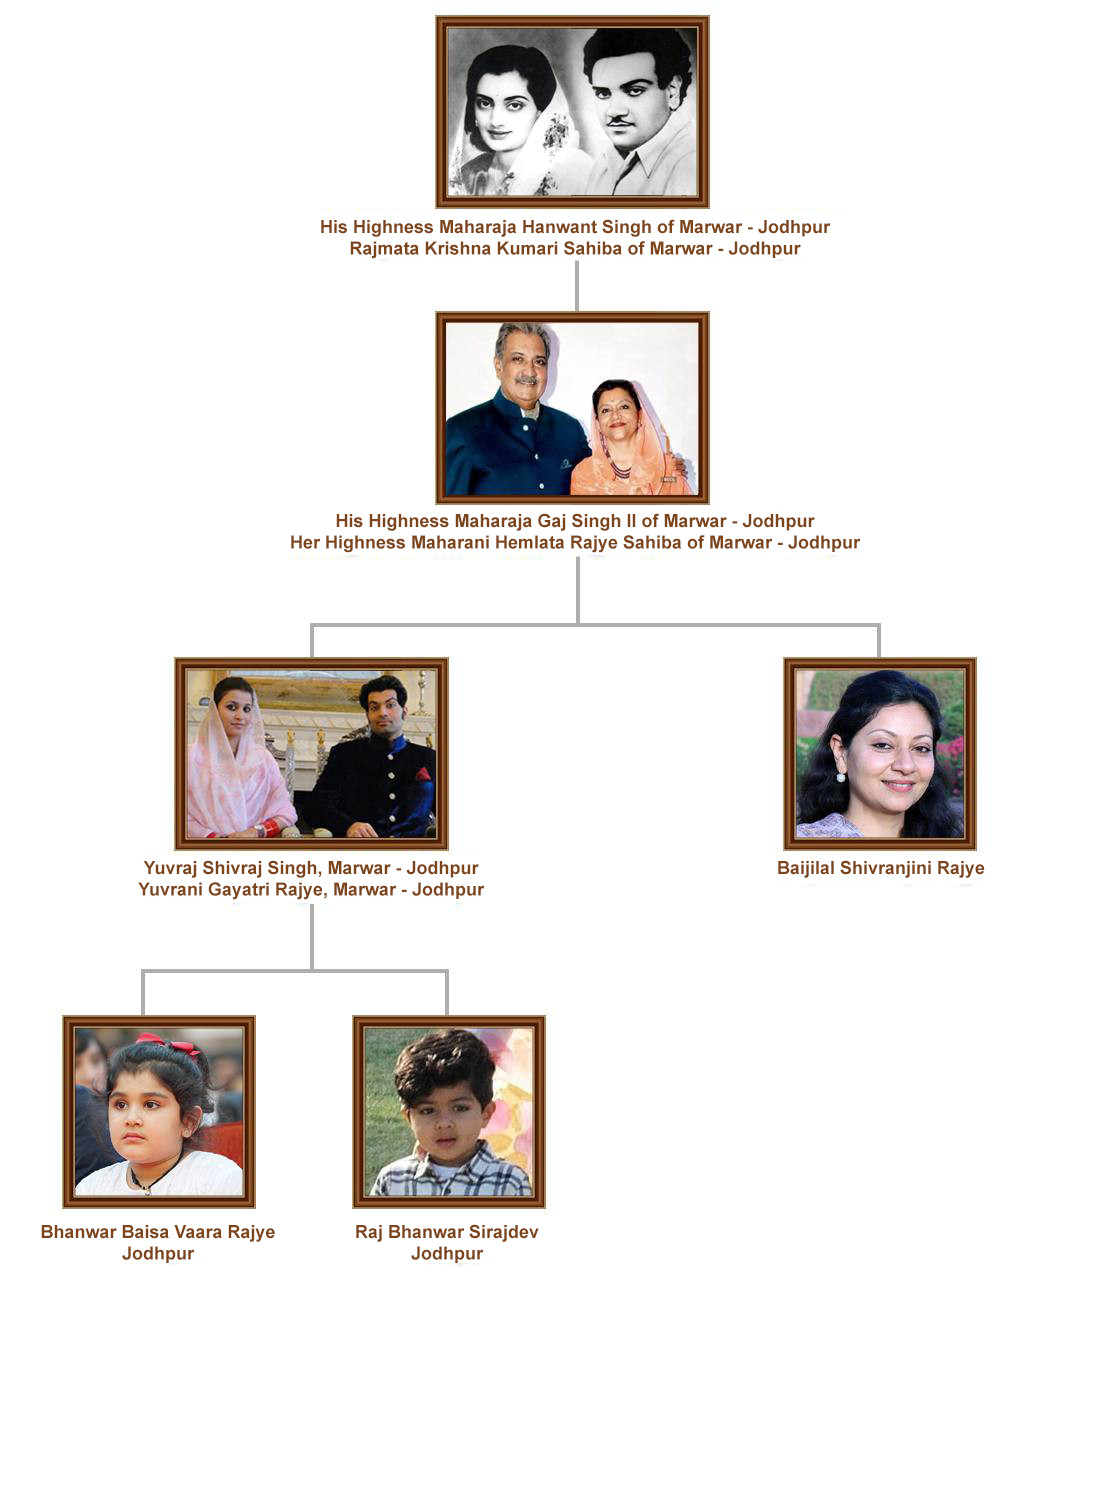 Jodhpur Royal Family Lineage